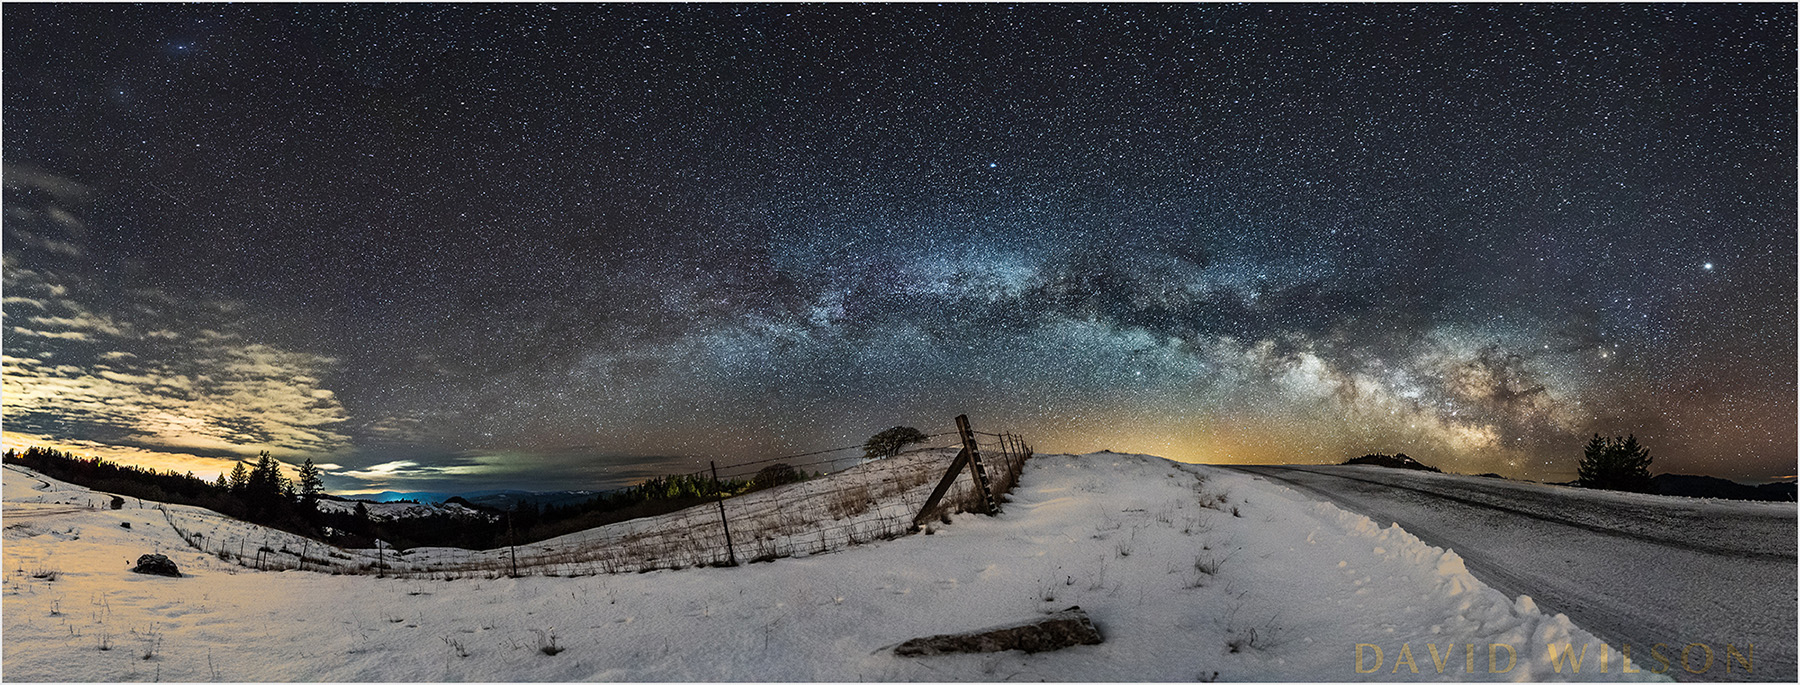 "This snowy pre-dawn scene is just outside of Kneeland, Humboldt County, CA. at 05:00 on February 21, 2018.At 03:30 I looked at my clock and felt so tired. But a voice said to me from inside, ""If you don't go out, you won't bring anything back.""""But sometimes a body needs sleep!""""Well, if you don't go out, you won't bring anything back.""""You always say that,"" I said. But I got up.I'd been to that spot and taken a few photos while photographing the Geminid Meteors with my son last December 13, 2017. The single silhouette is me, and then the double is both of us. Since I'd been here back in December, I knew the spot, the rise in the land as the road rounds that curve, and which way it was facing.I use an app called Sky Guide to tell me where in the sky celestial things will be, and when. I can look to see what will be visible tonight, next year, or last year, at any time of the day. Using that app, I knew that the Galactic Core of the Milky Way — the part with the greatest detail, contrast and color — would be rising low over the eastern horizon this time of year starting after 03:00. (Where it is at what time is different throughout the year).Thank goodness I'd been there in December, because from that I knew it was going to be the perfect spot to see the Milky Way before dawn began brightening the east. From what the app said, it looked like the Milky Way was going to be rising at a low angle above the horizon close above the horizon in the wee hours, and my memory of the spot put it right above the road where it makes that turn. My weather site said the sky cover would be less than 40% that morning, and that there'd be a little snow that night to add to what remained from the previous days. When I got there it was perfect, one of those beautiful gifts that keep coming my way. You can see that night's snowfall as a thin layer on the road."